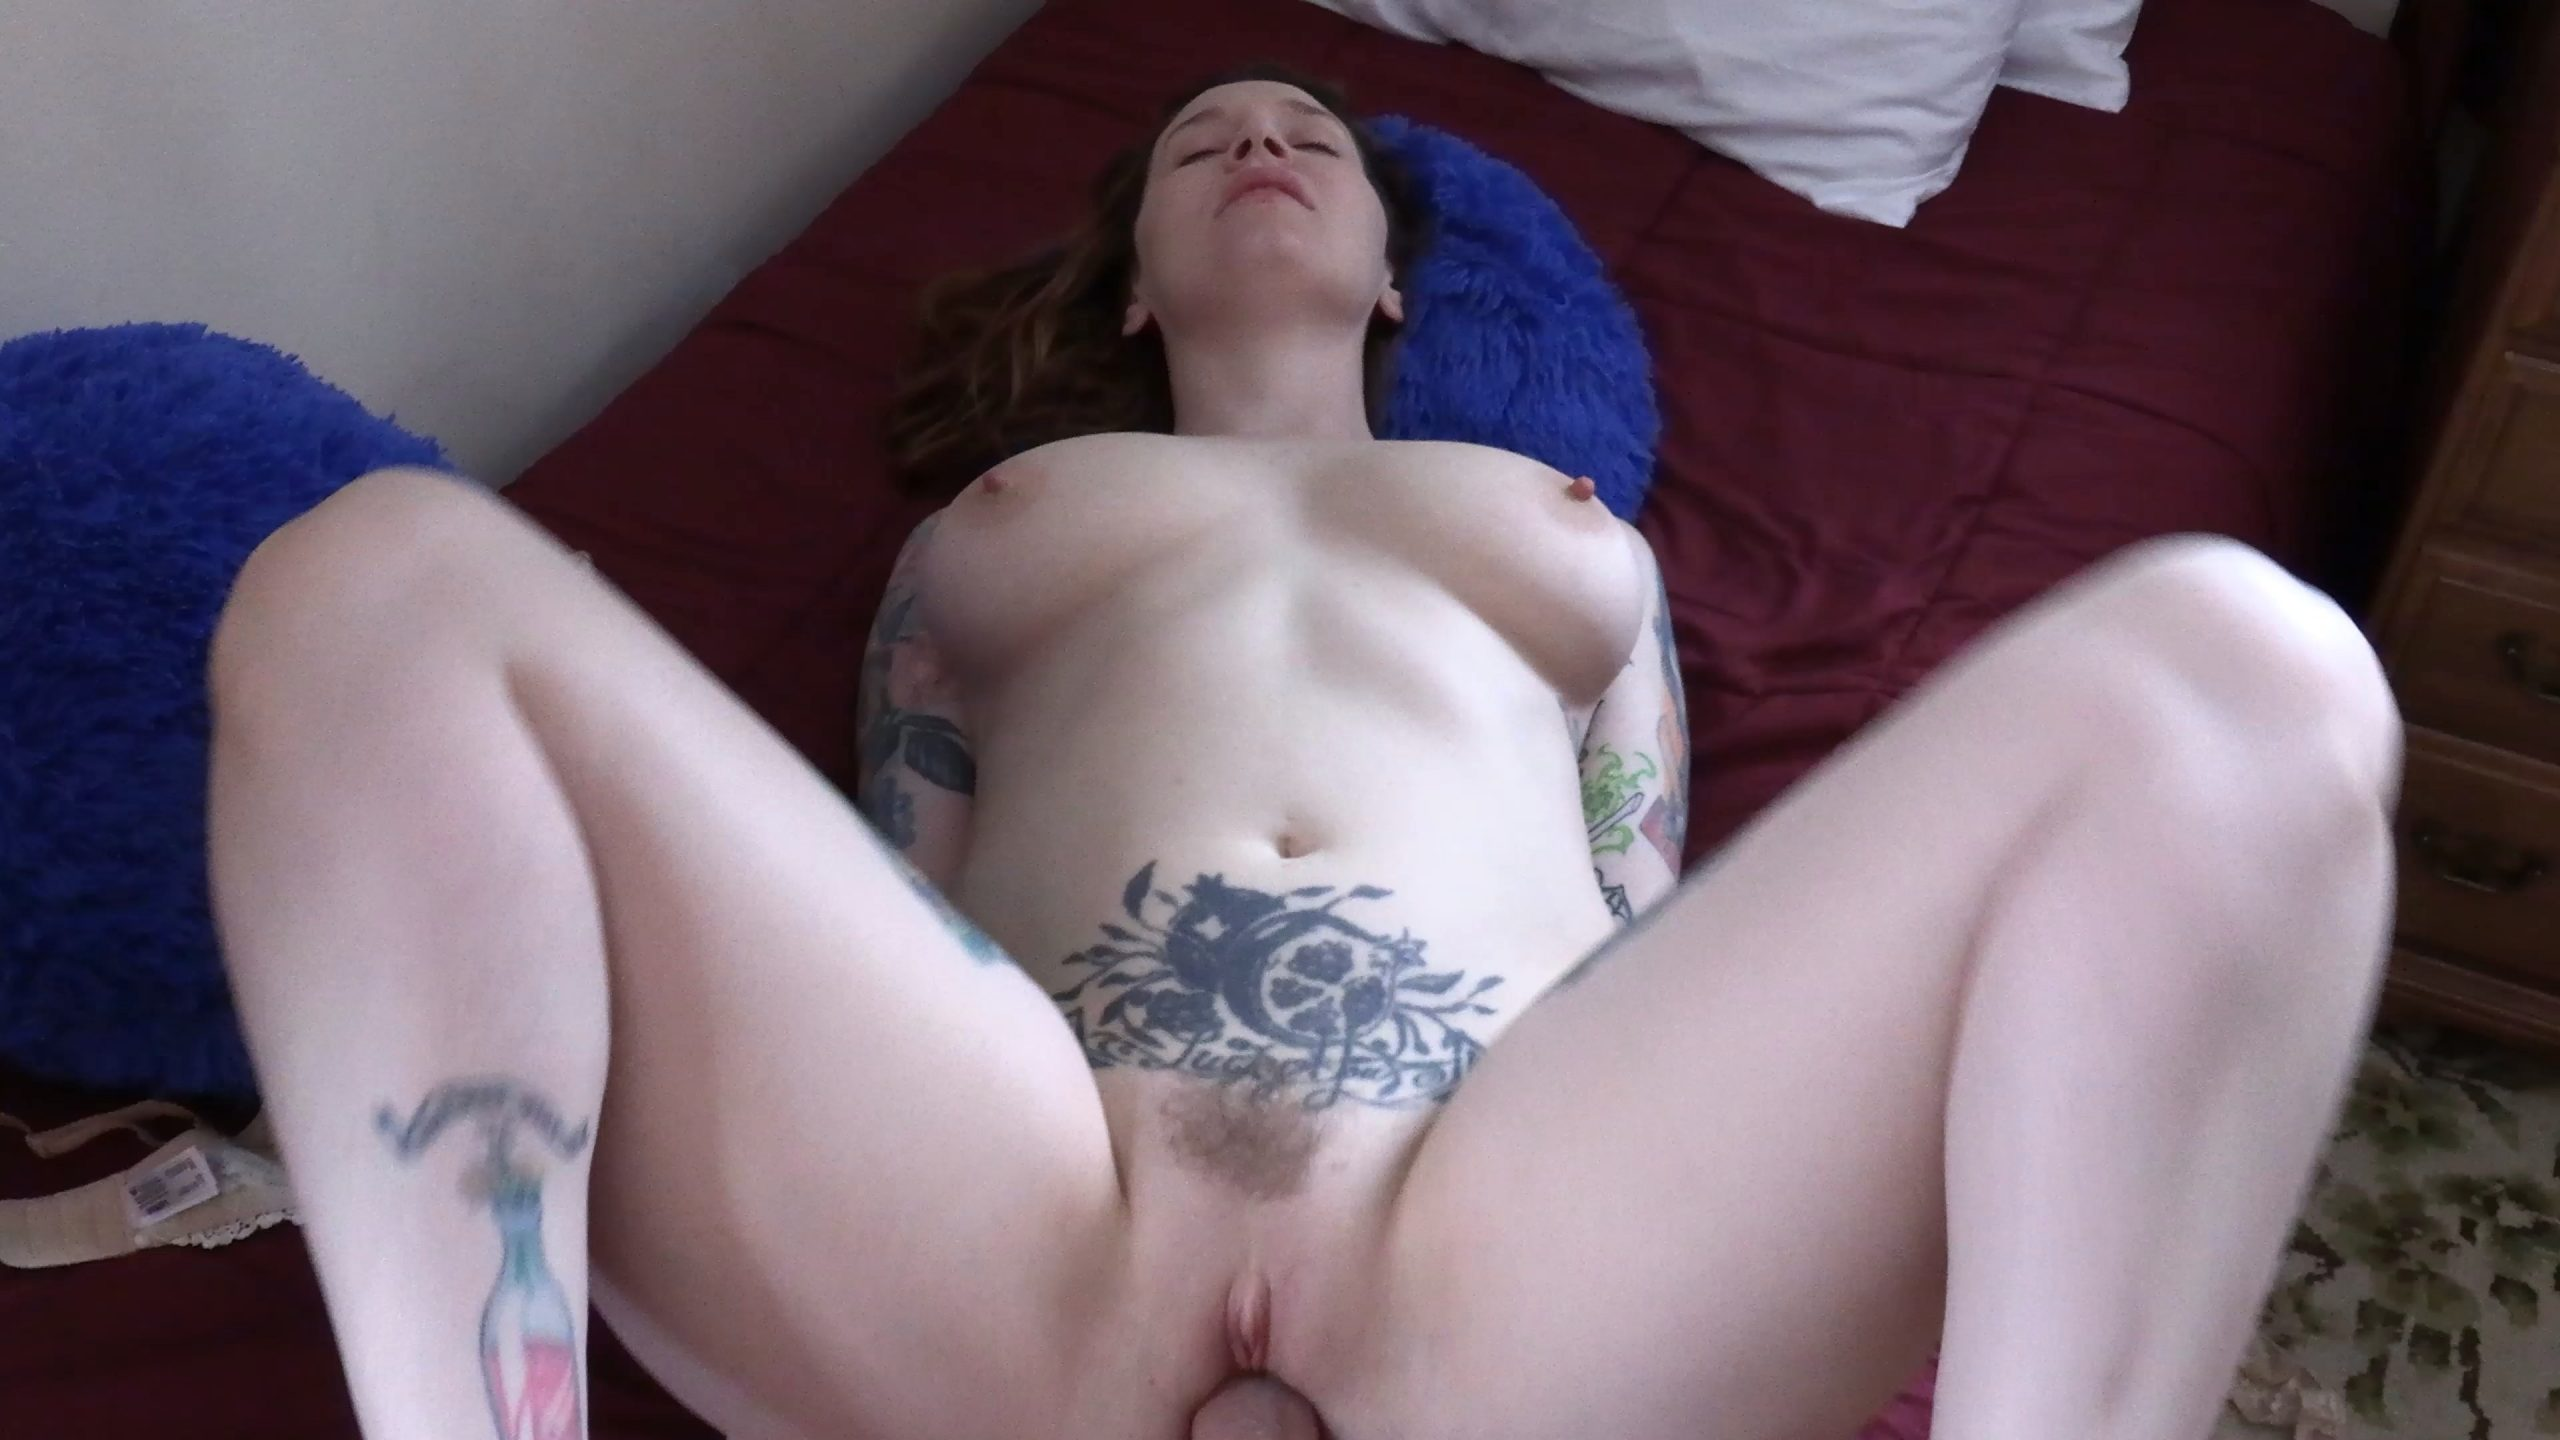 Bettie Bondage - Sex Ed with Mom and Sis 4K